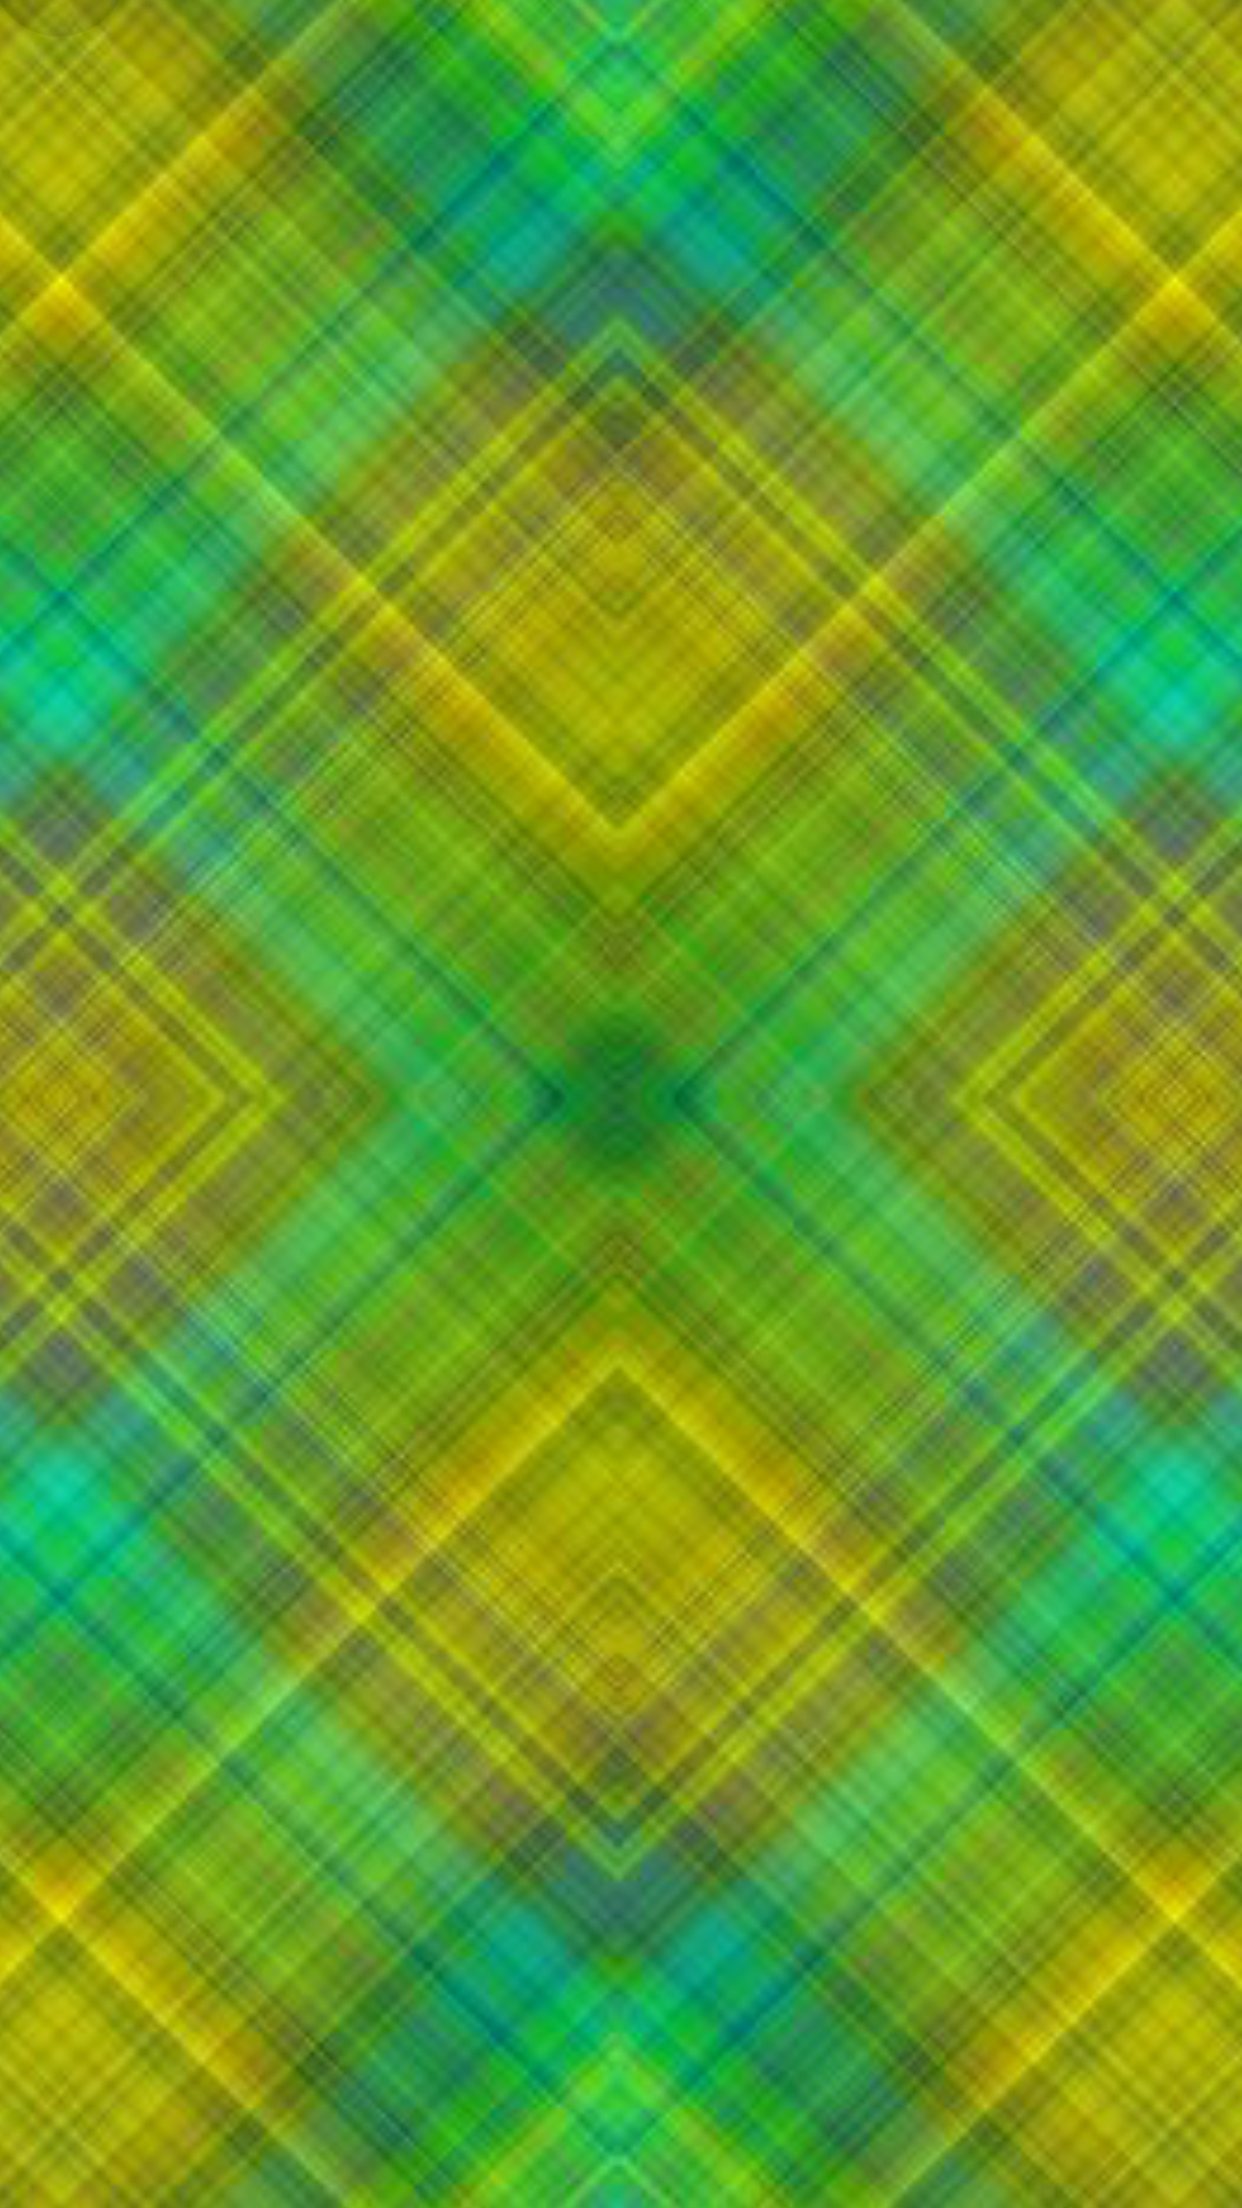 Pin by Cathy Watkins on Fractal/Art/Wallpaper II Plaid